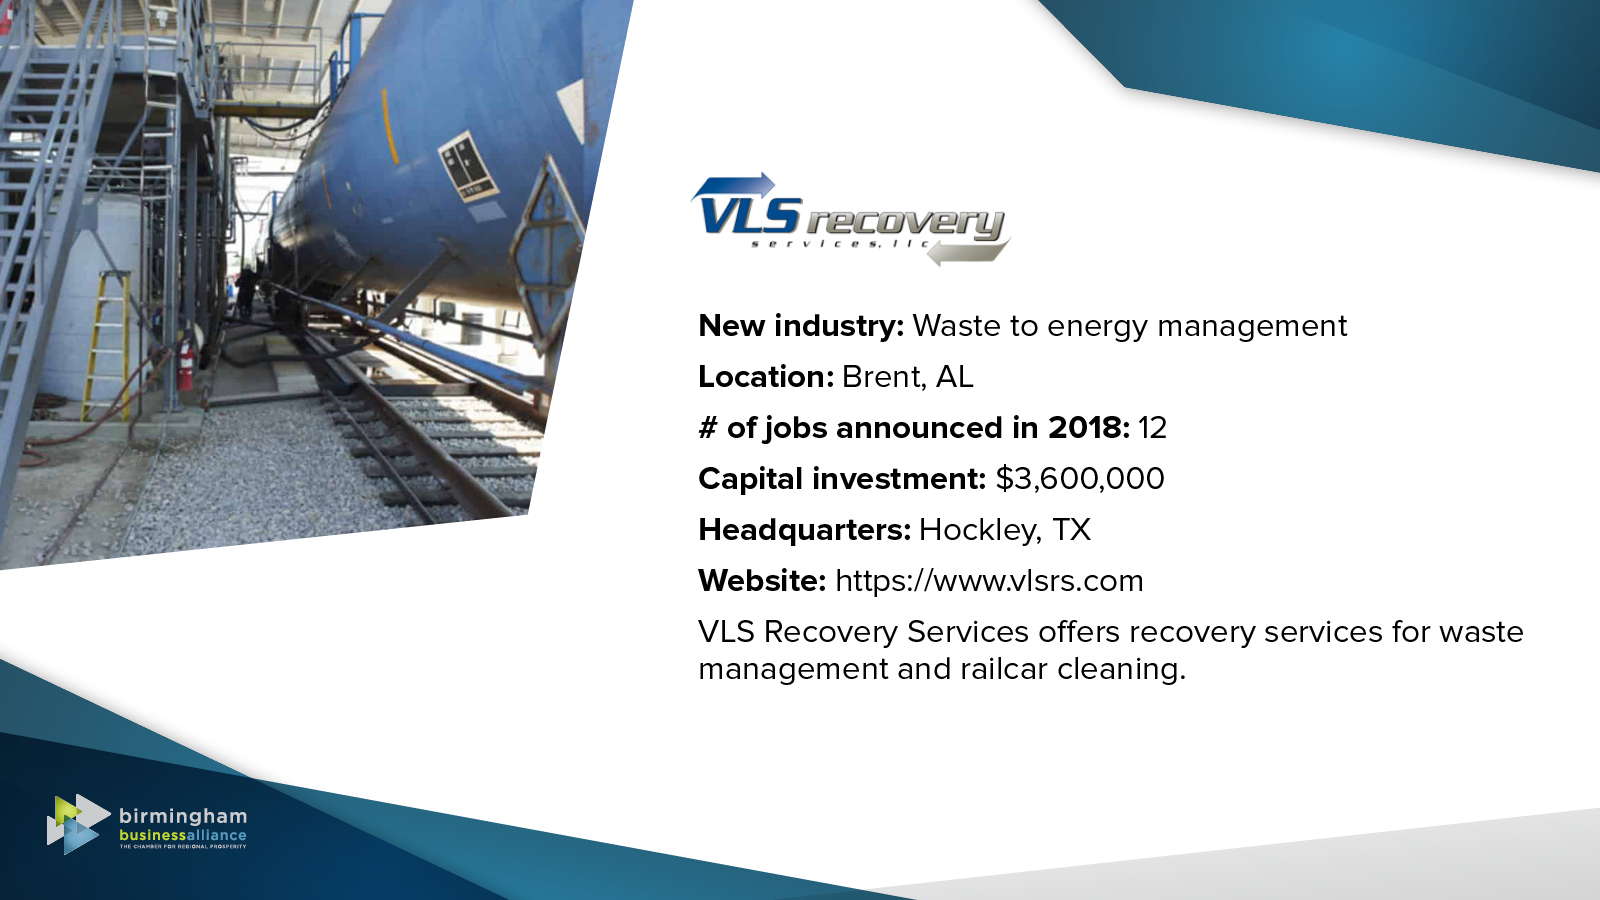 56) VLS Recovery Services